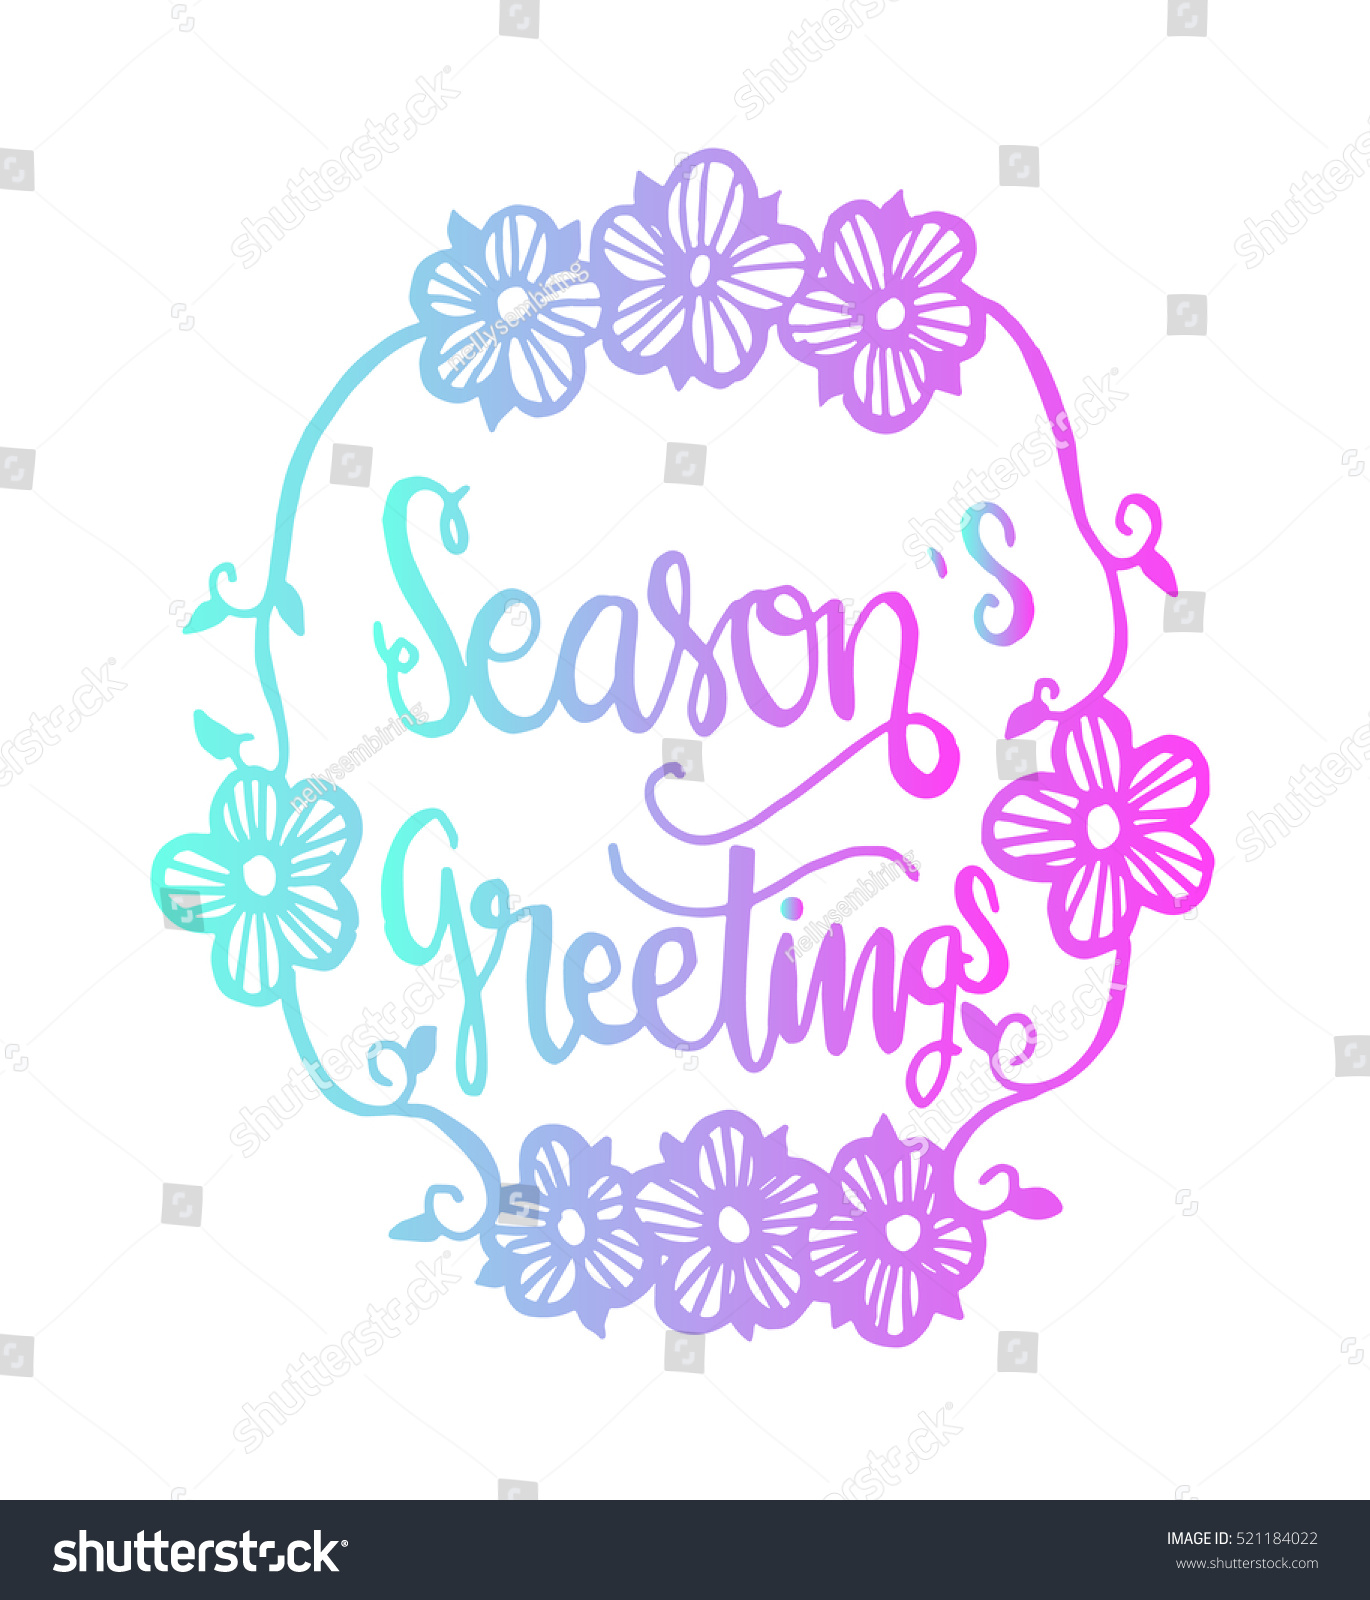 Seasons Greetings Hand Lettered Quote Bible Stock Vector 521184022